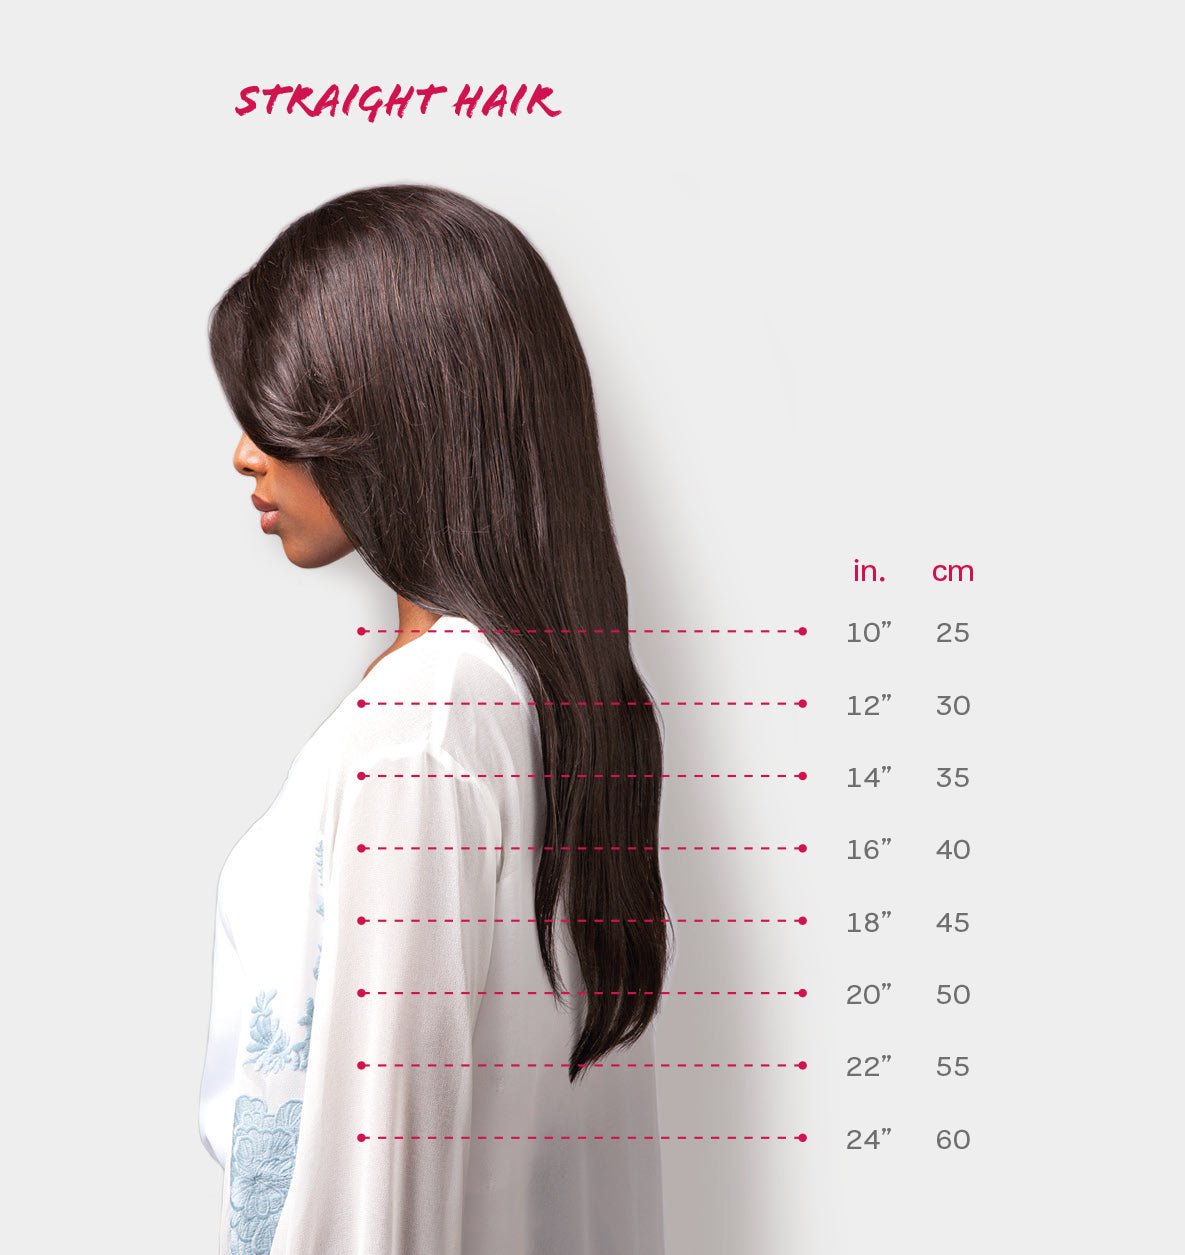 Hair Length Guide - Straight Hair